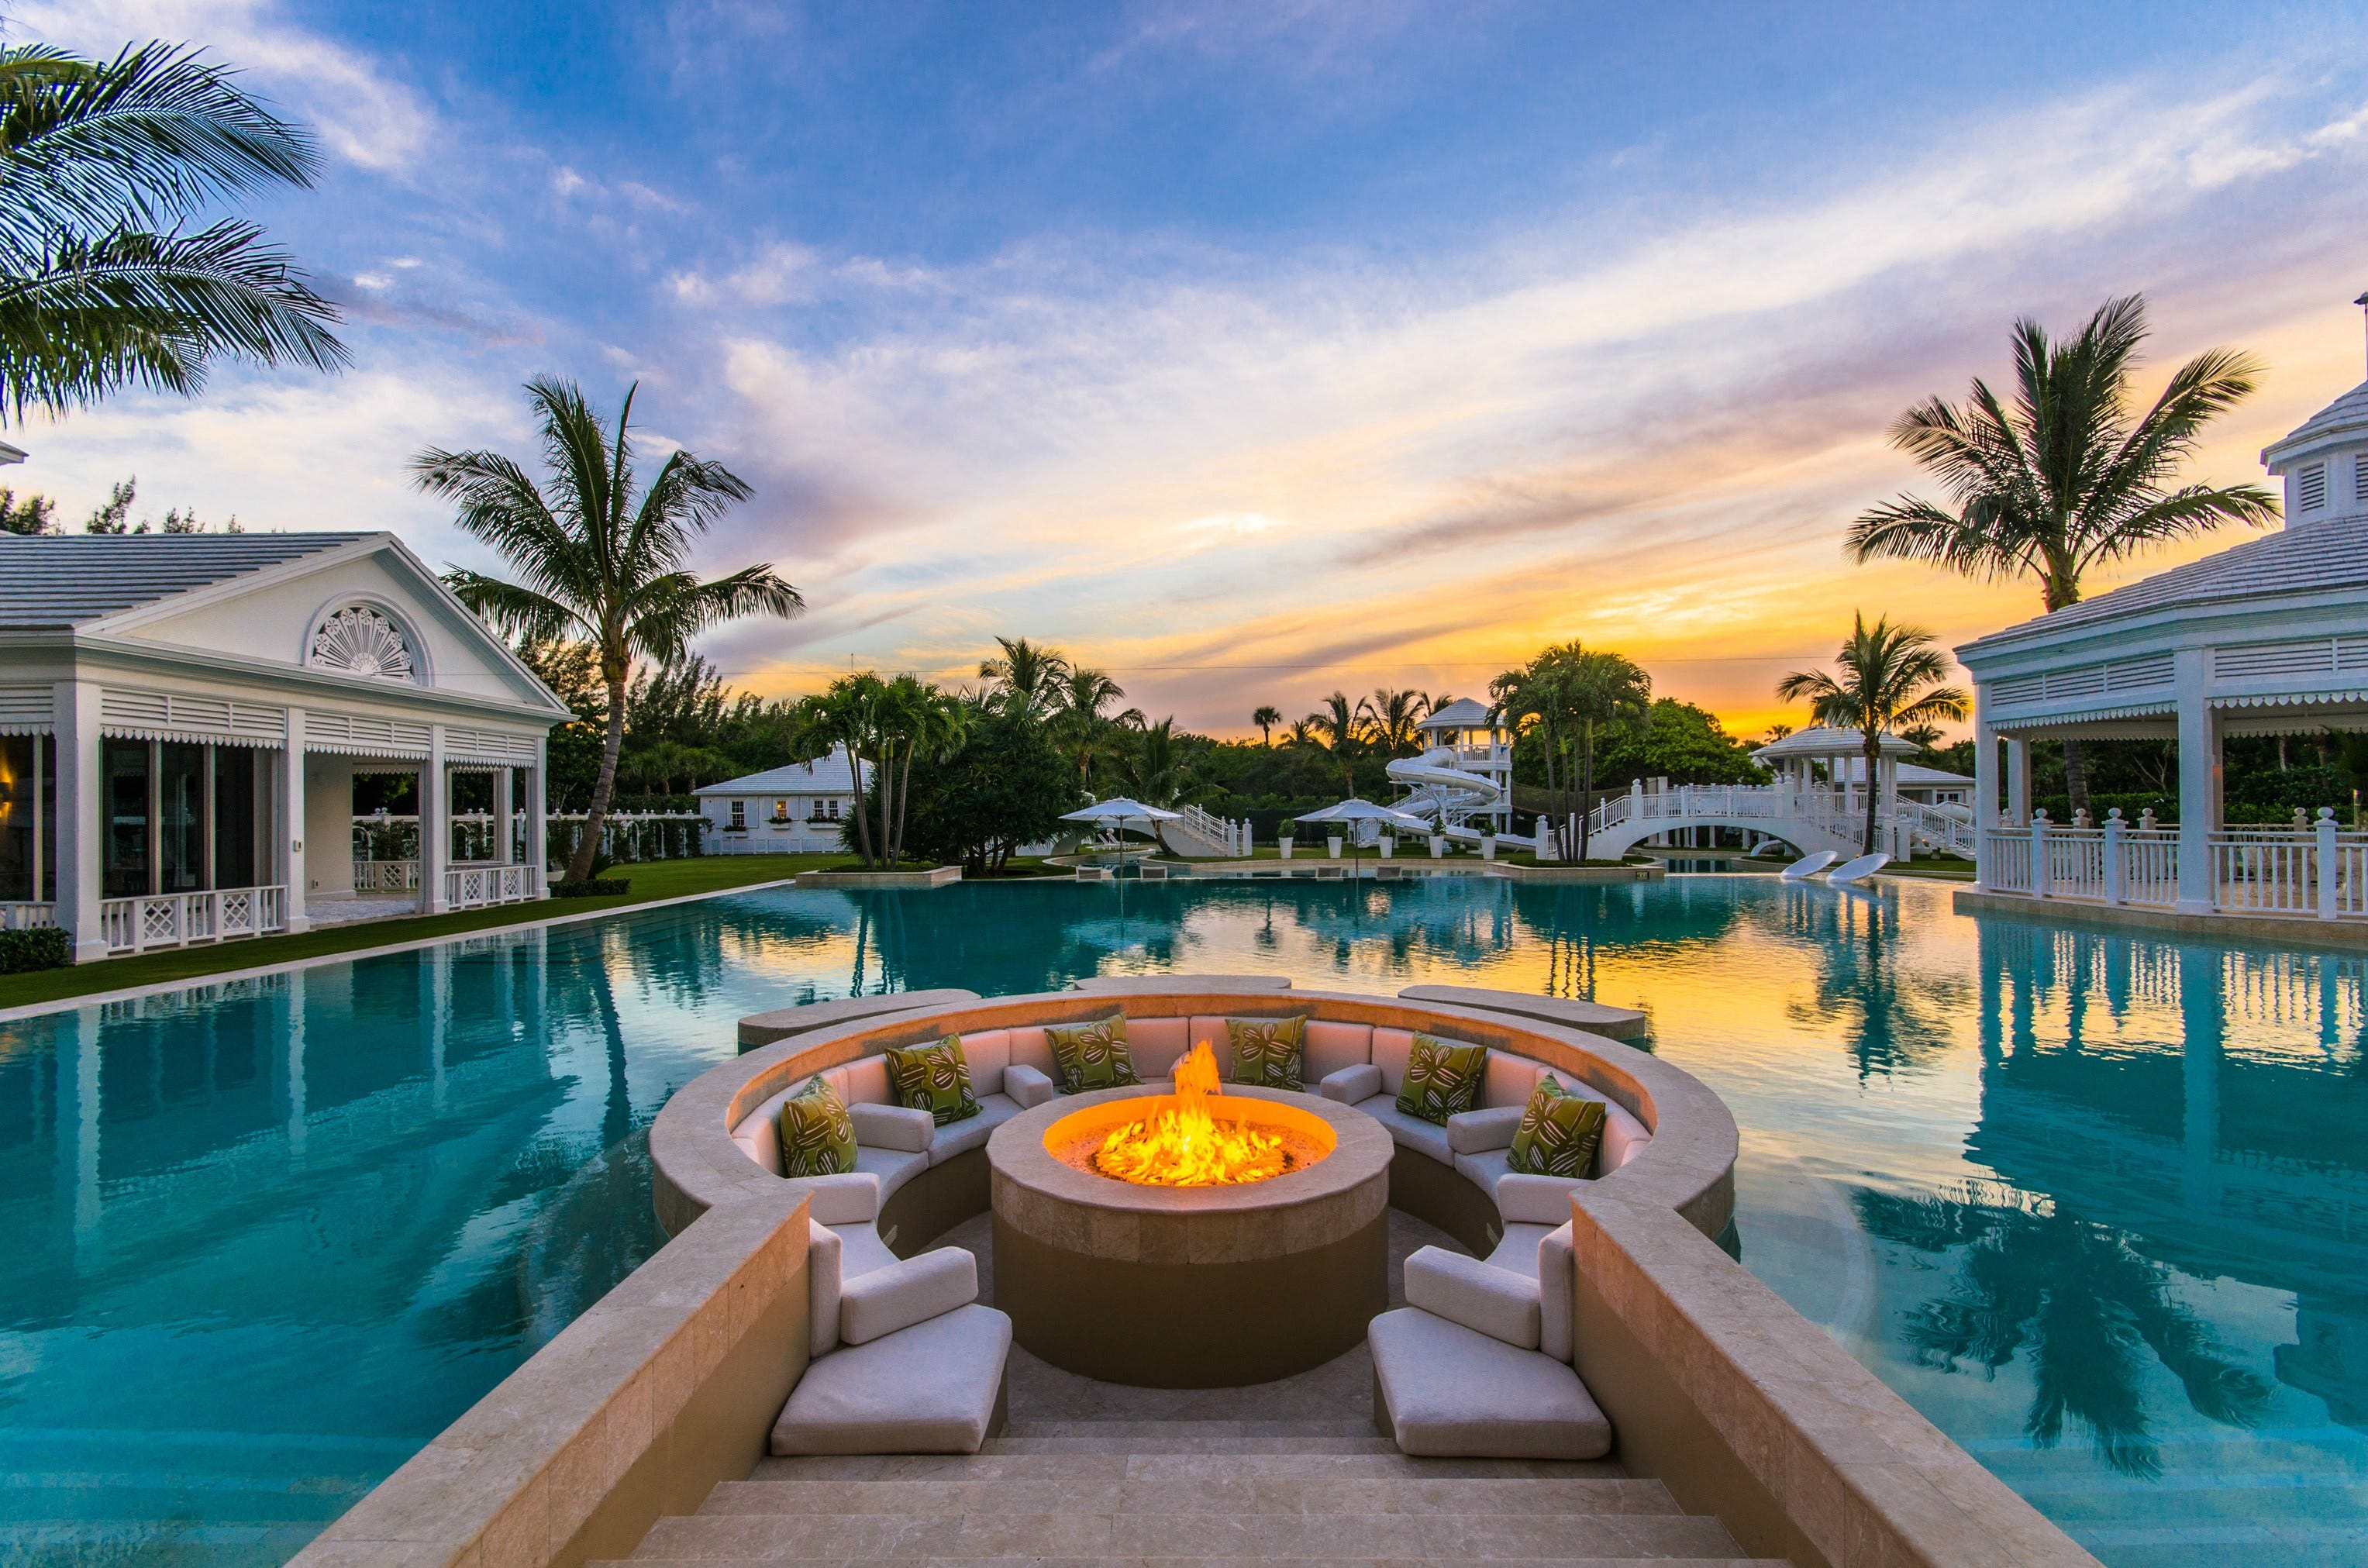 Top 6 celebrity mansions: See who owns a $63M water park